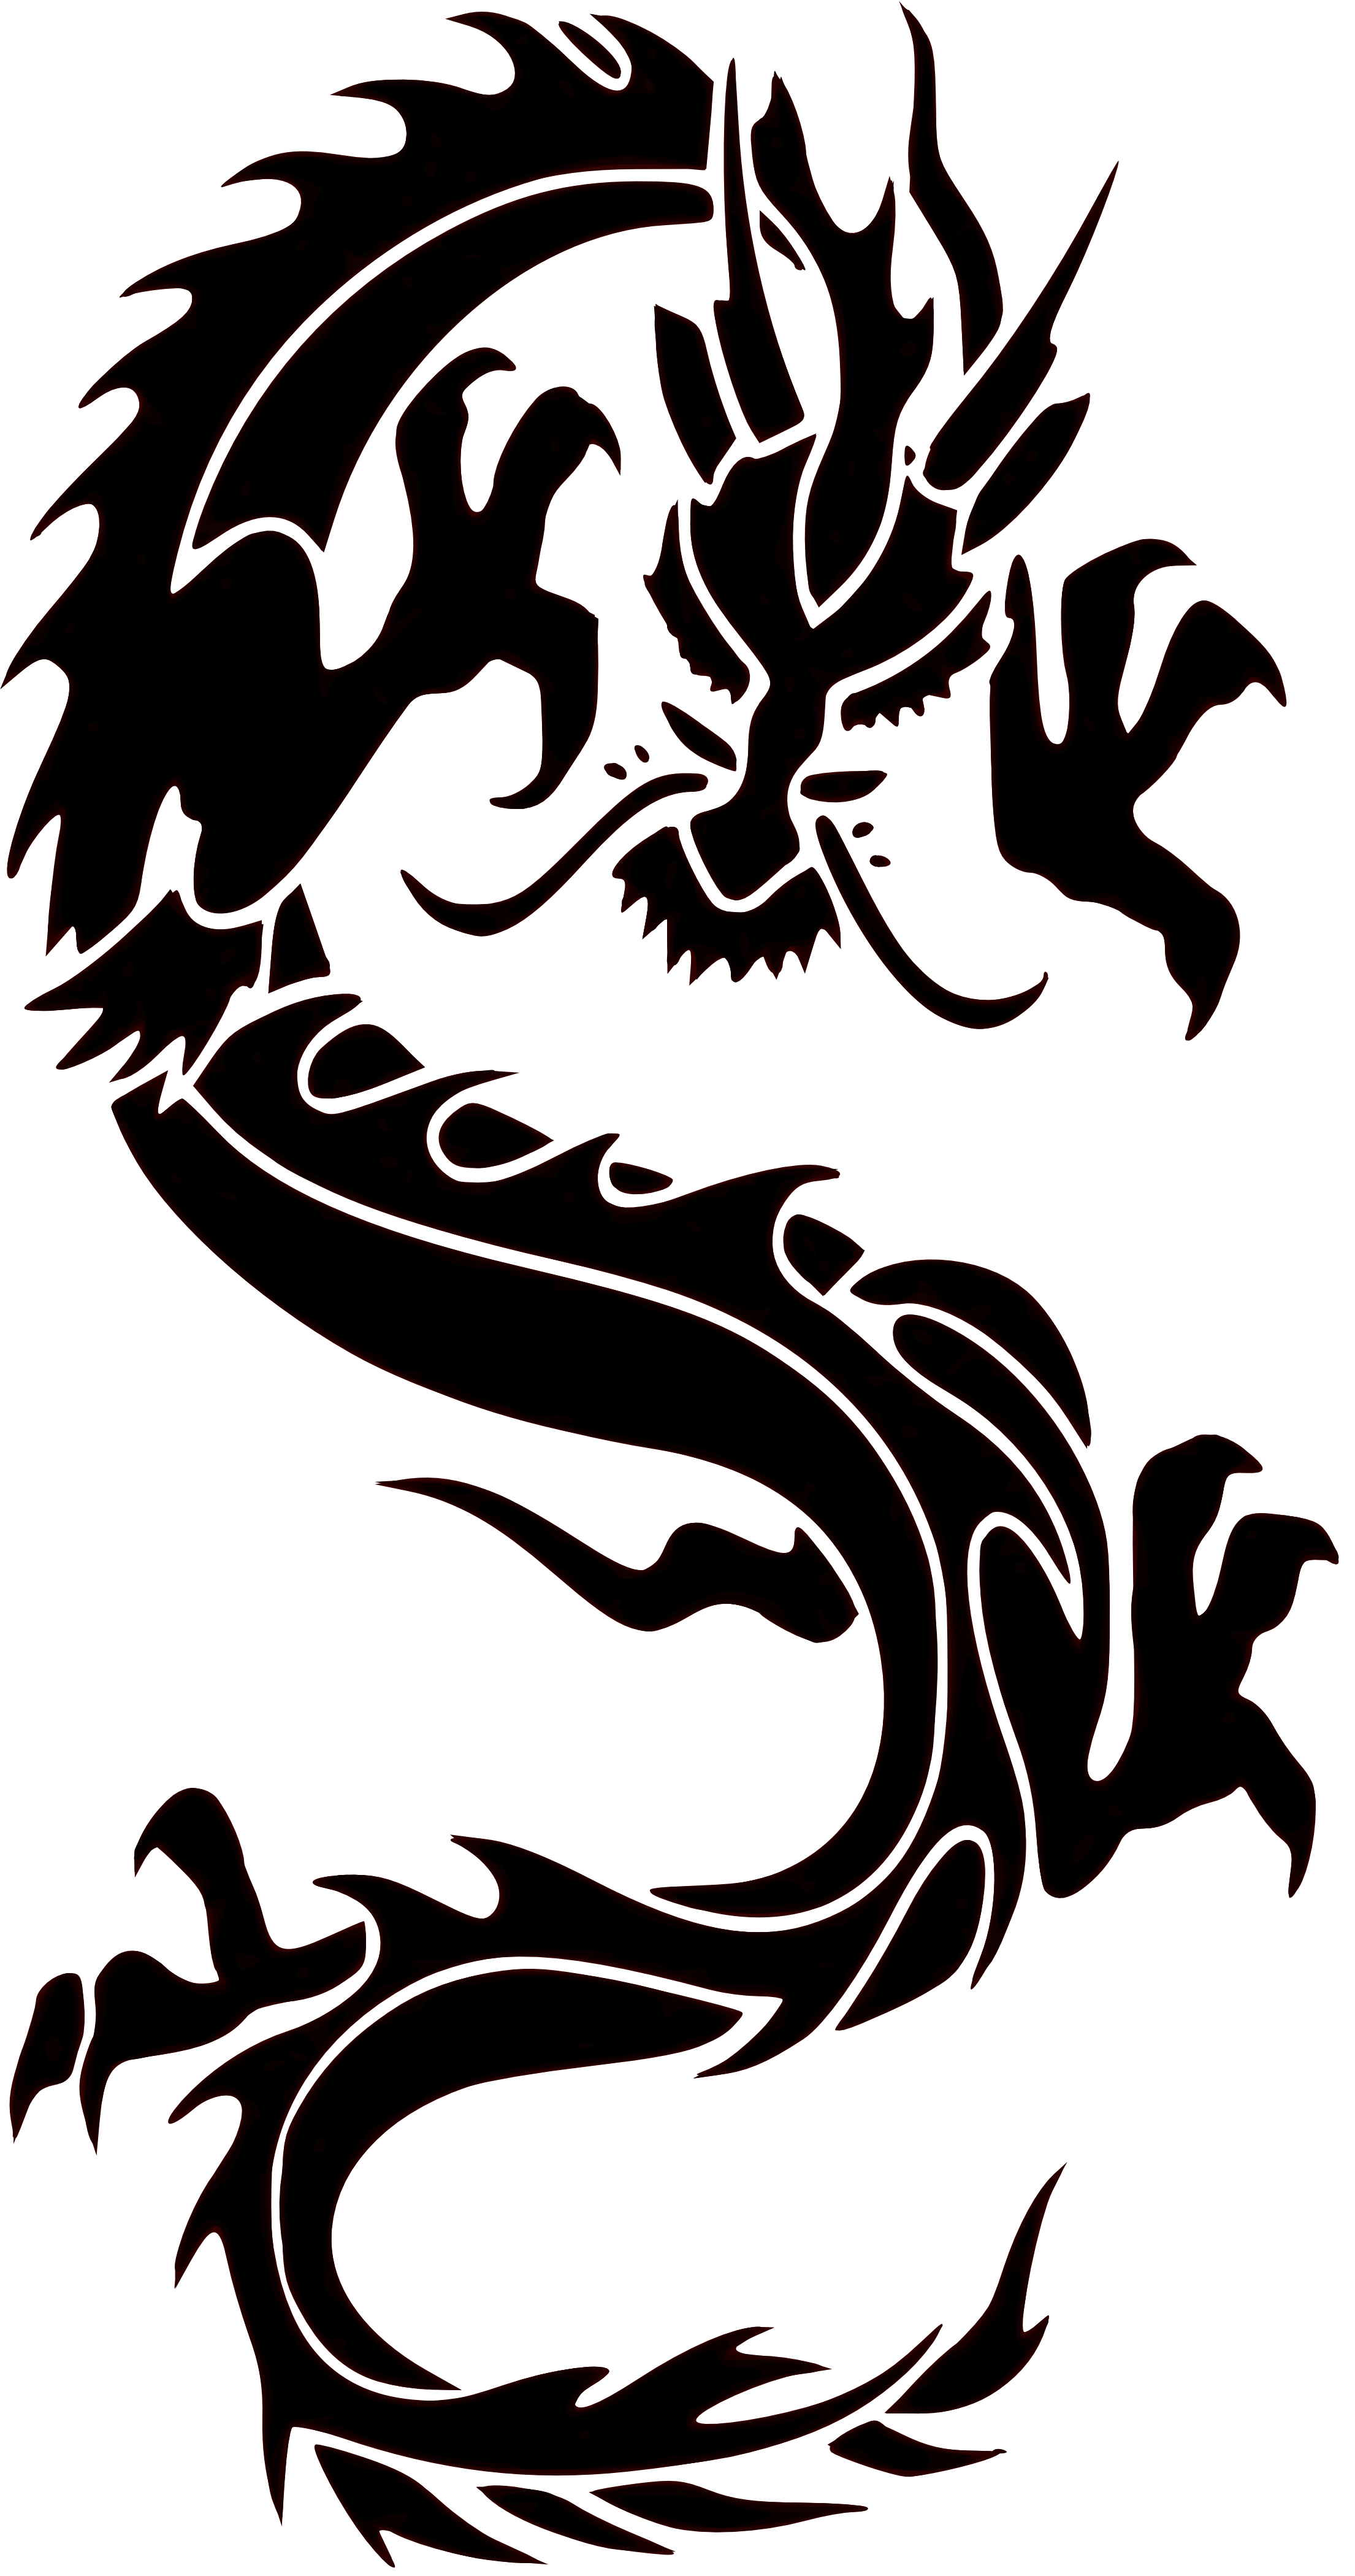 Chinese Dragon Images | Free download on ClipArtMag